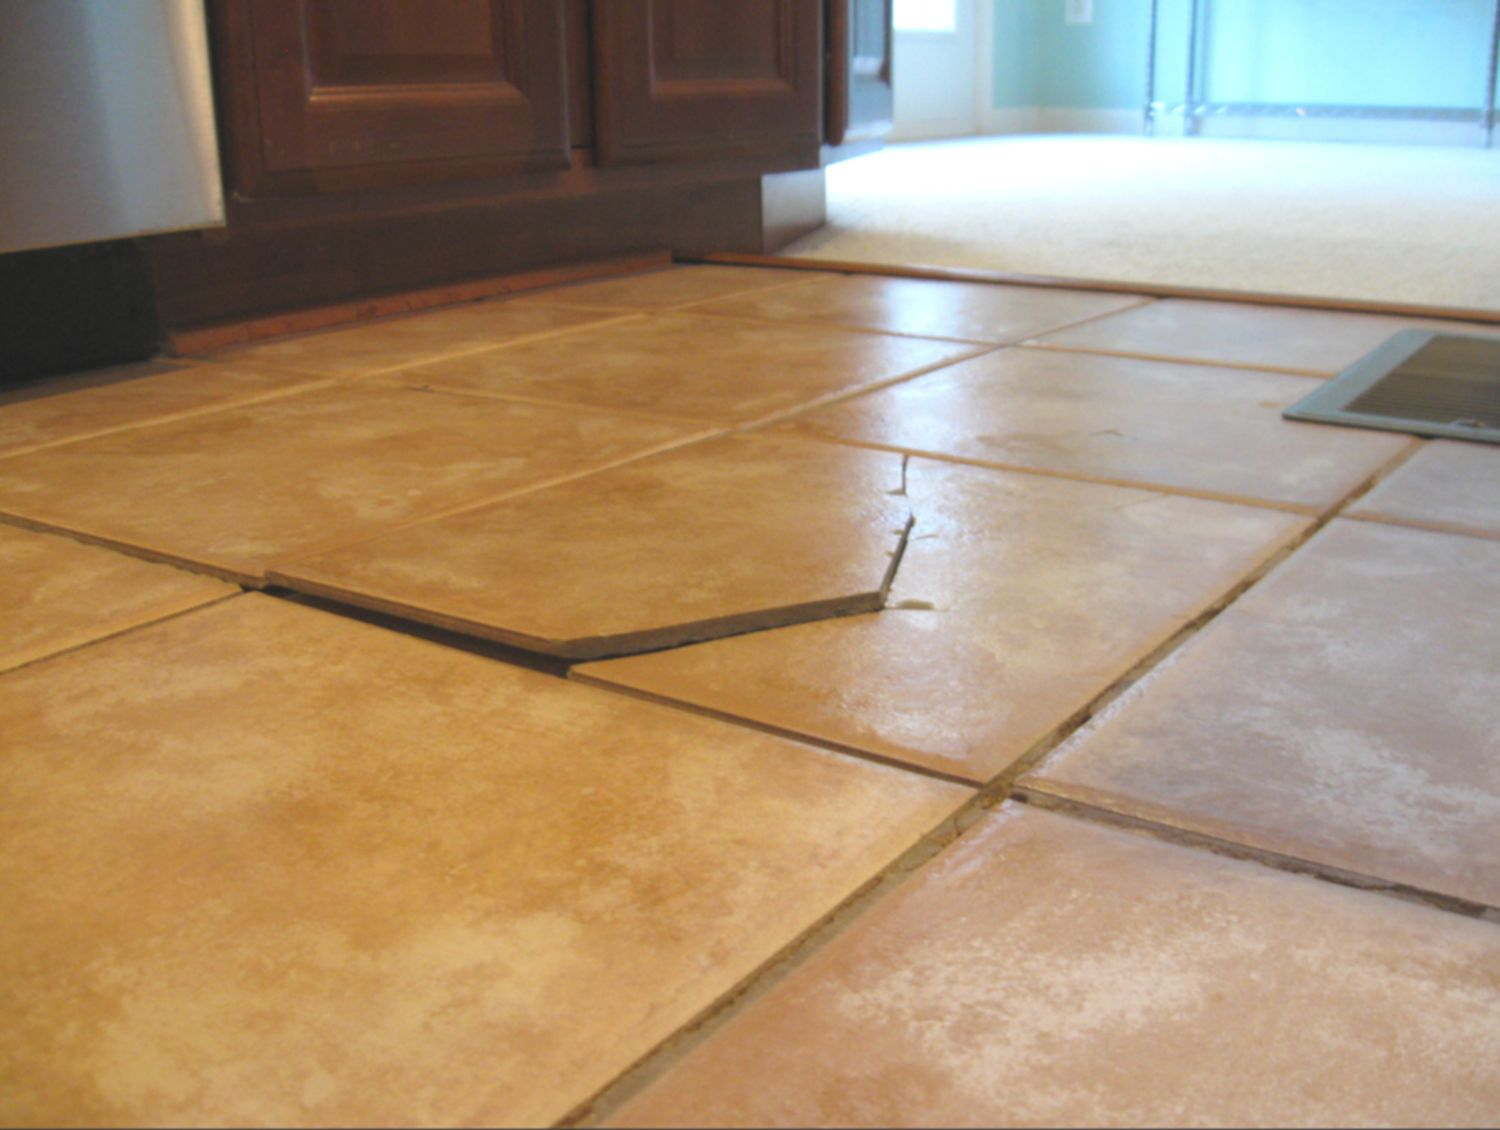 The 4 best subfloors to use for laying ceramic tile your tile floor is cracked this is why dailygadgetfo Images